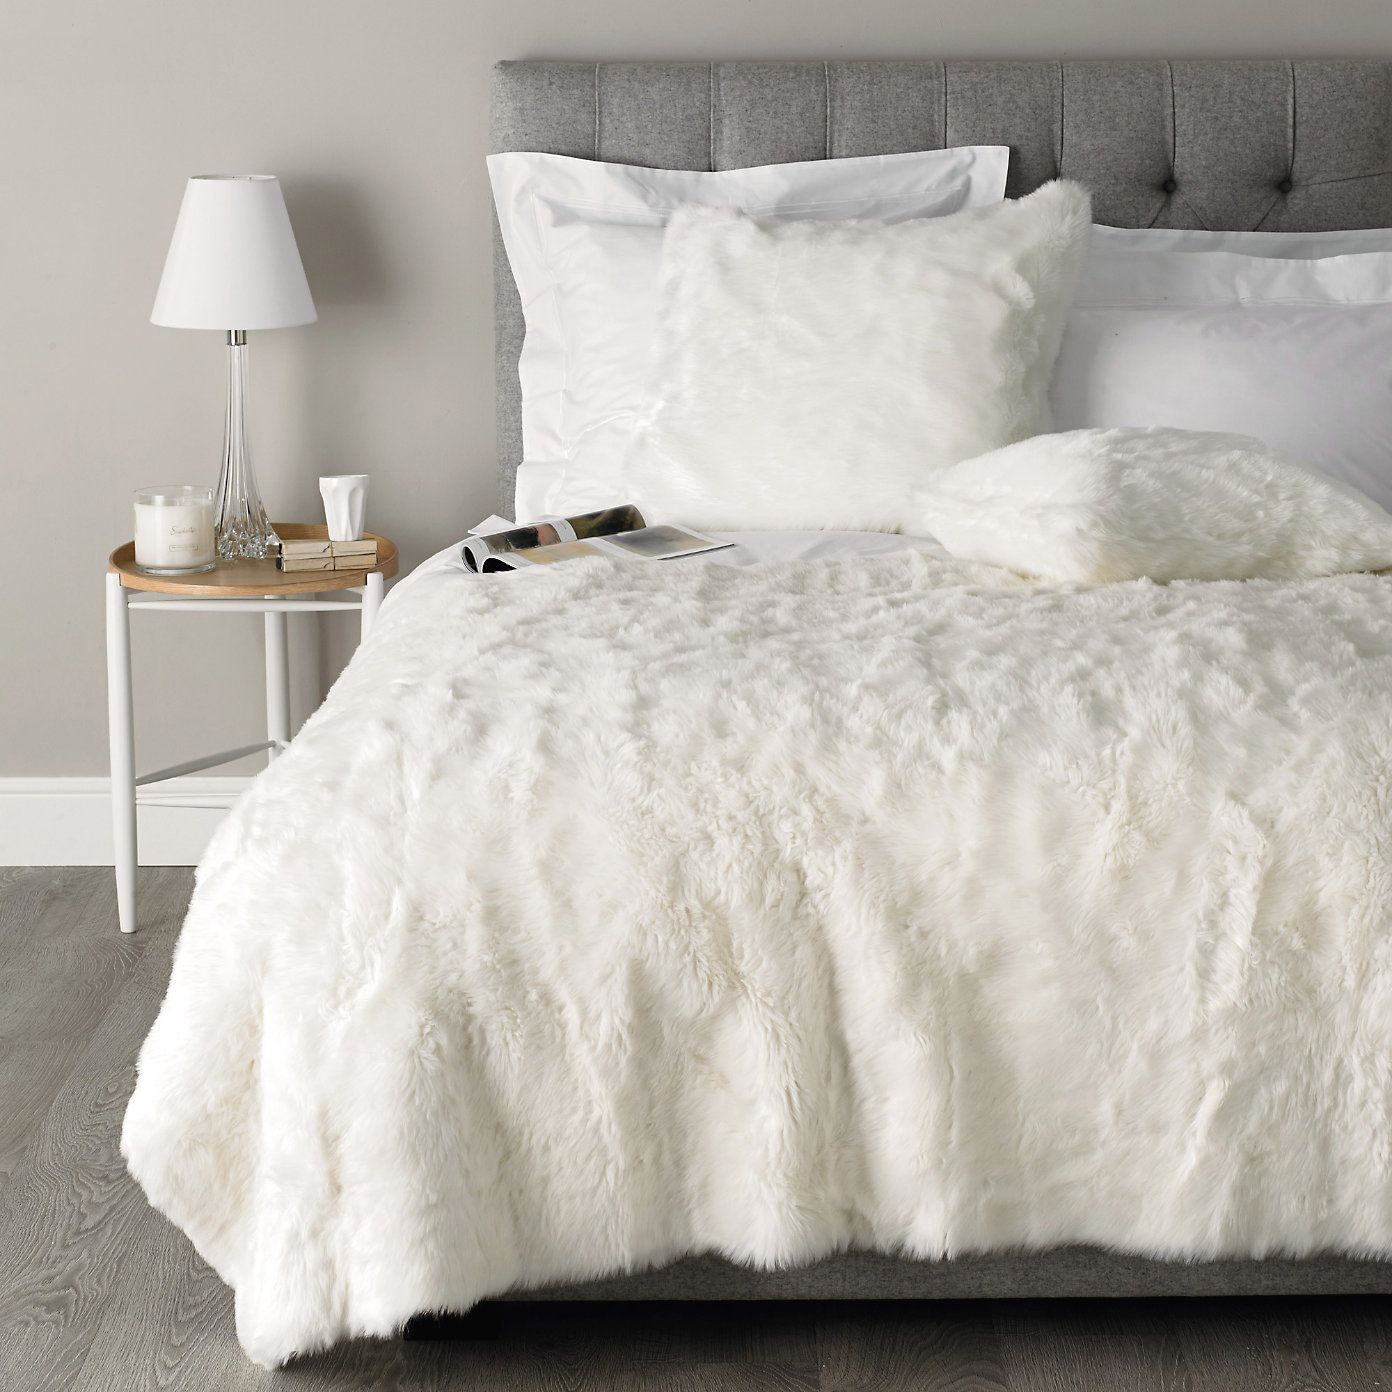 Best Luxury Faux Fur Throw Bedspreads Cushions The White 400 x 300